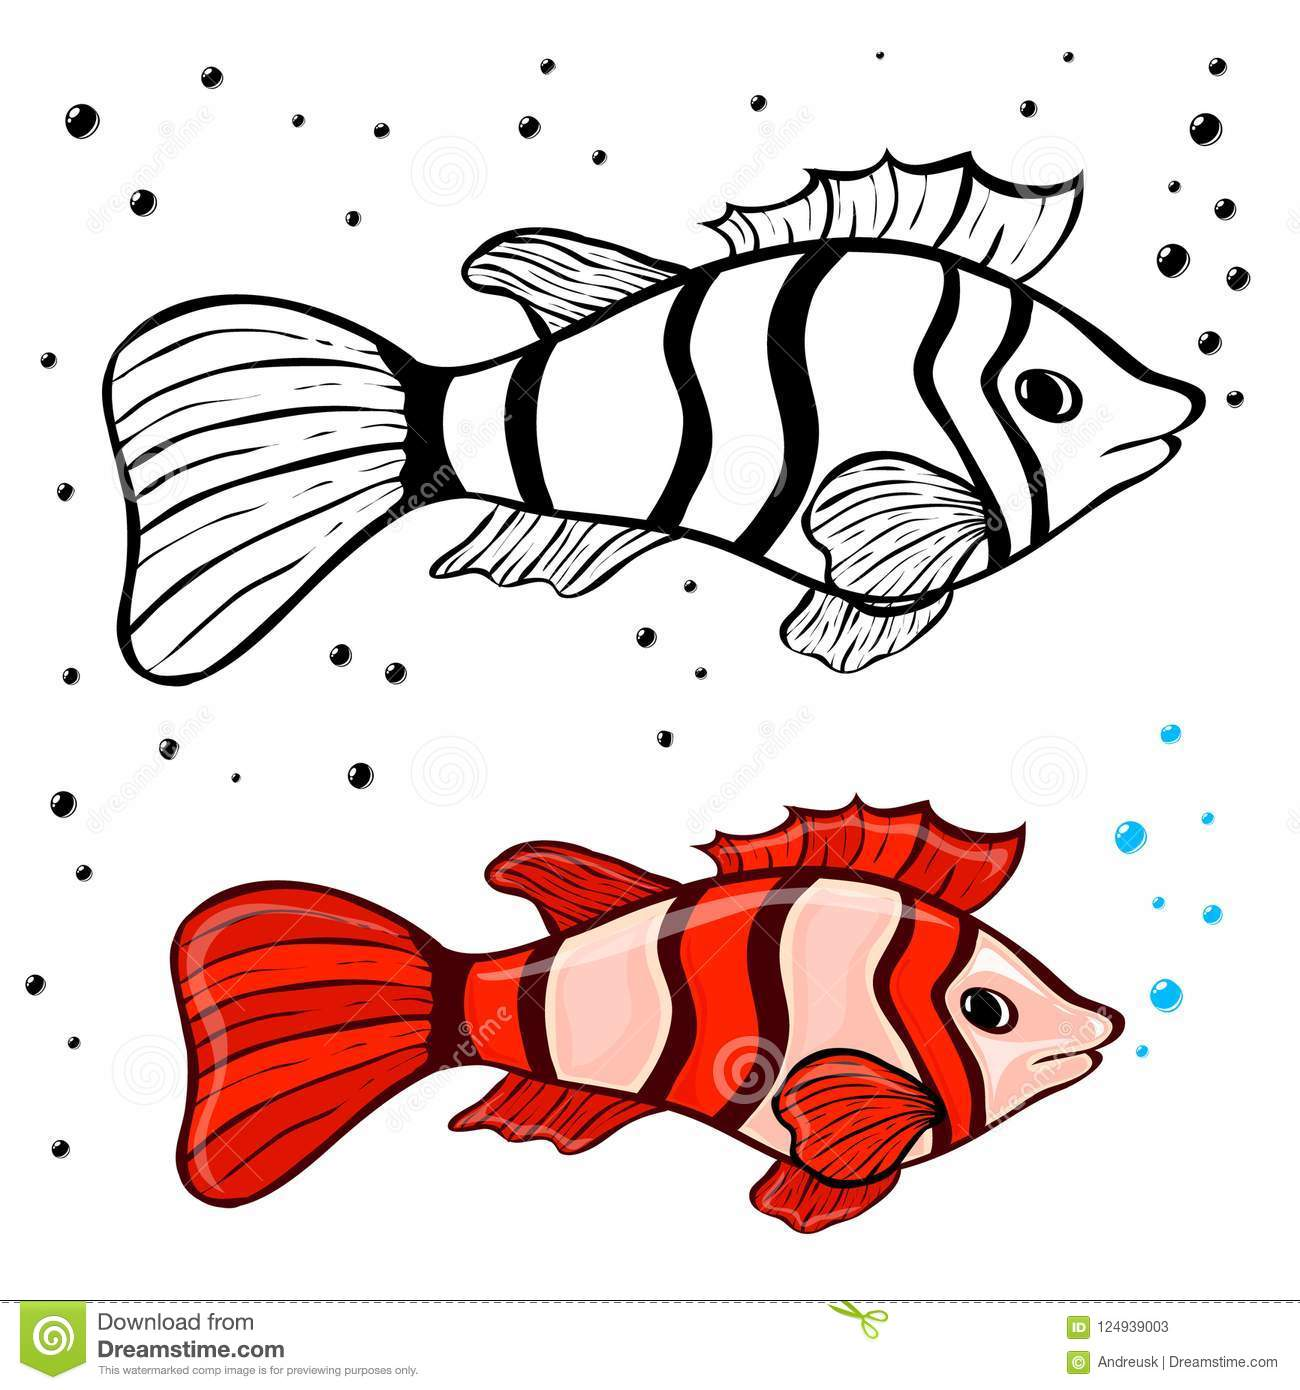 Fish coloring pages stock vector. Illustration of drawing ...